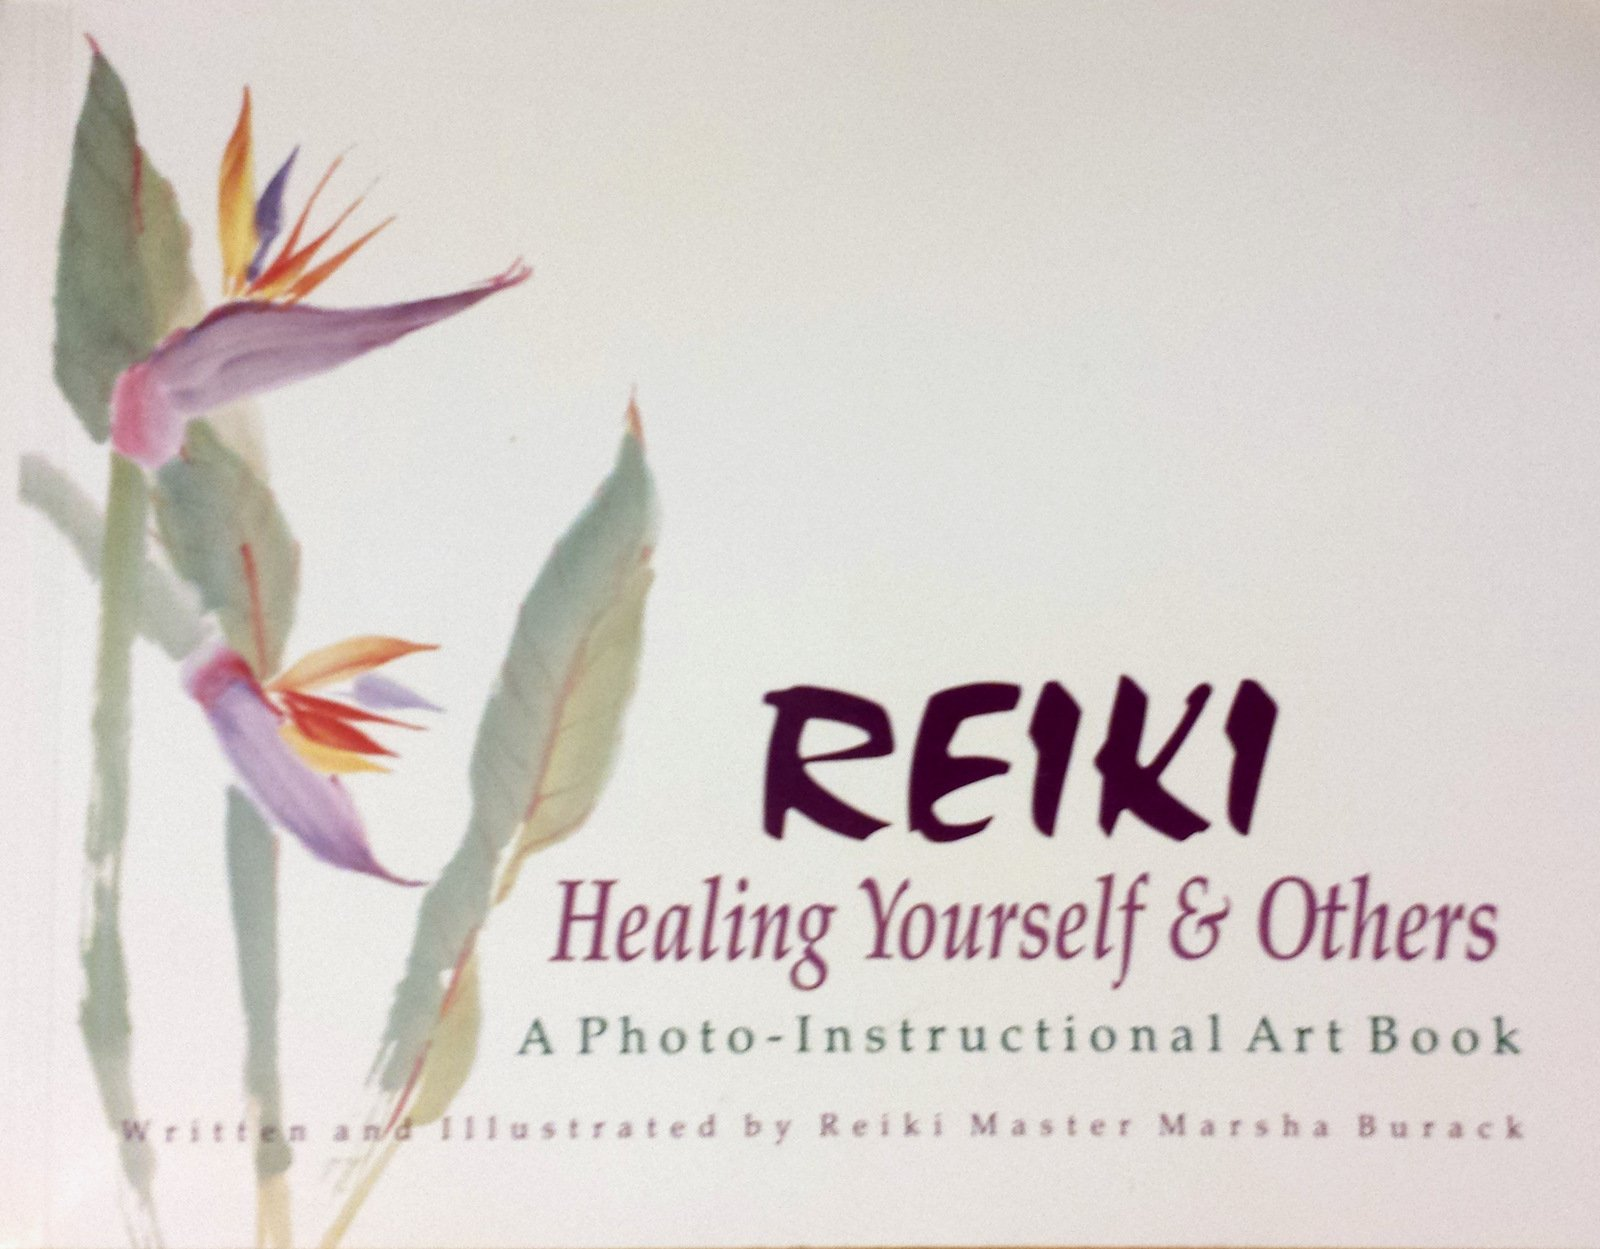 Reiki healing yourself others a photo instructional art book reiki healing yourself others a photo instructional art book marsha burack 9781880441398 amazon books fandeluxe Gallery